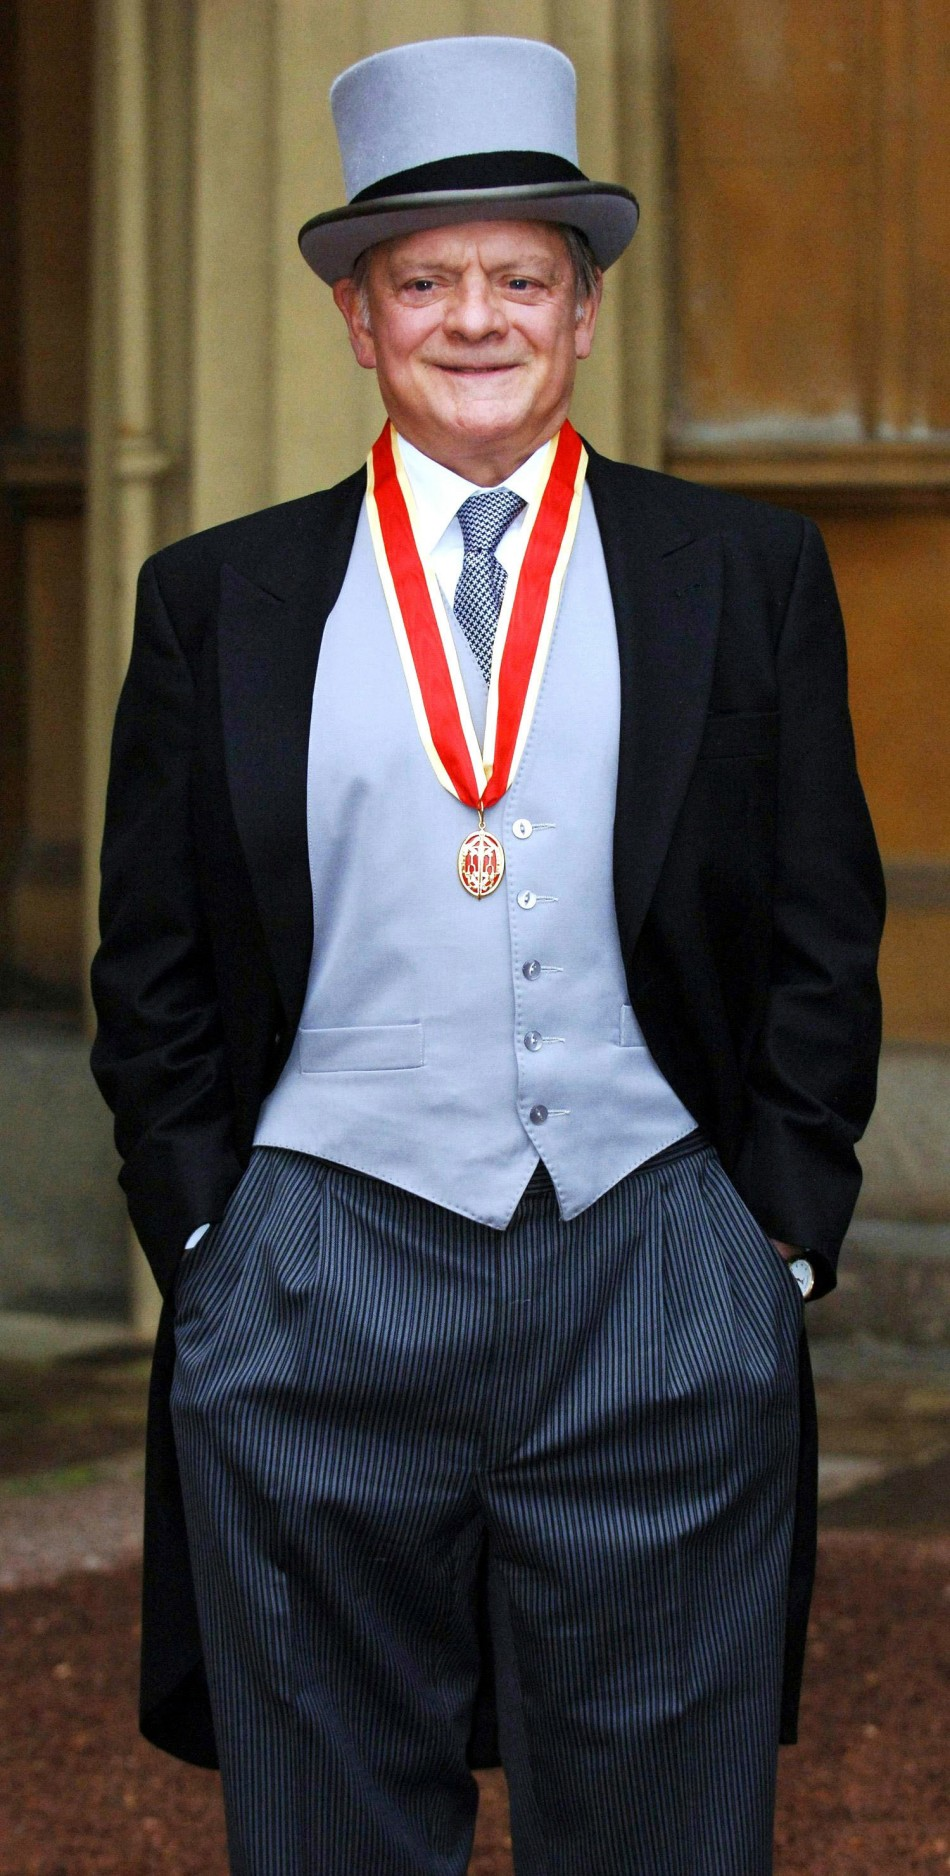 British actor David Jason stands after collecting his knighthood from Britain's [Queen Elizabeth II] during an investiture ceremony at Buckingham Palace in central London December 1, 2005. Sir David, as he will be known, is the popular star of television'